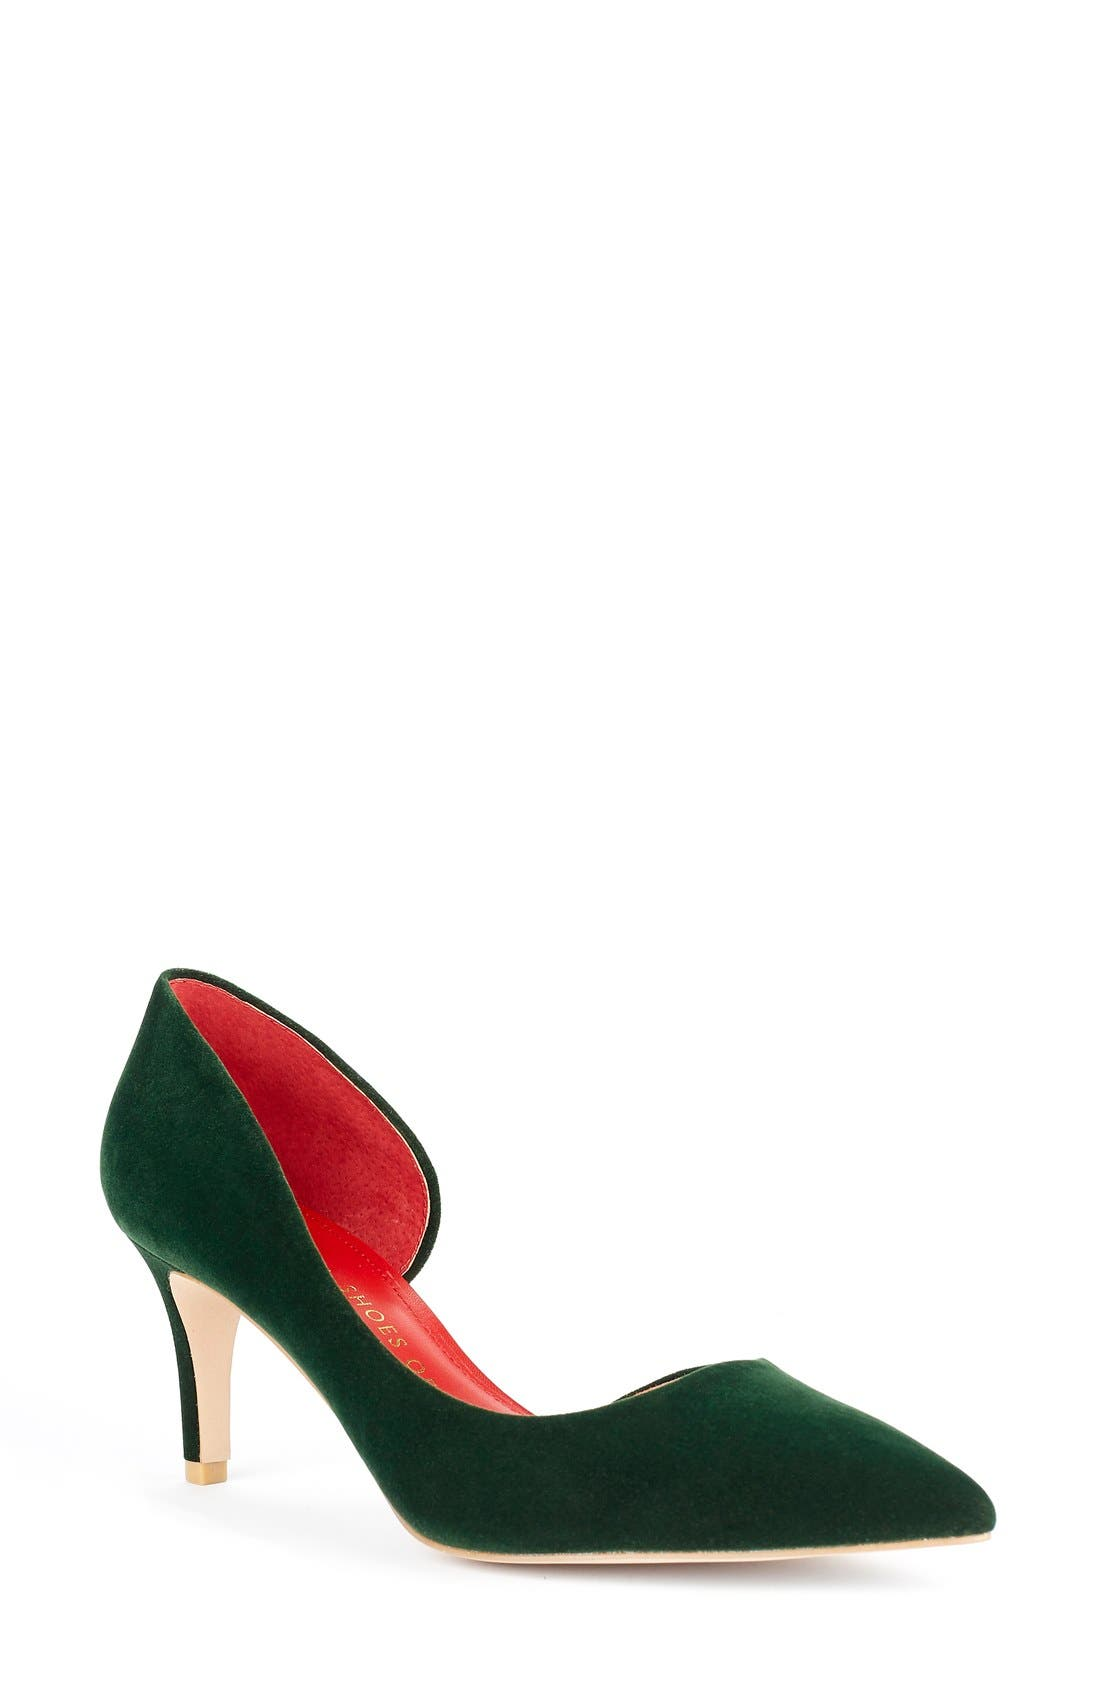 Main Image - Shoes of Prey x Kim Jones La Dolce Vita Collection Half d'Orsay Pump (Women)